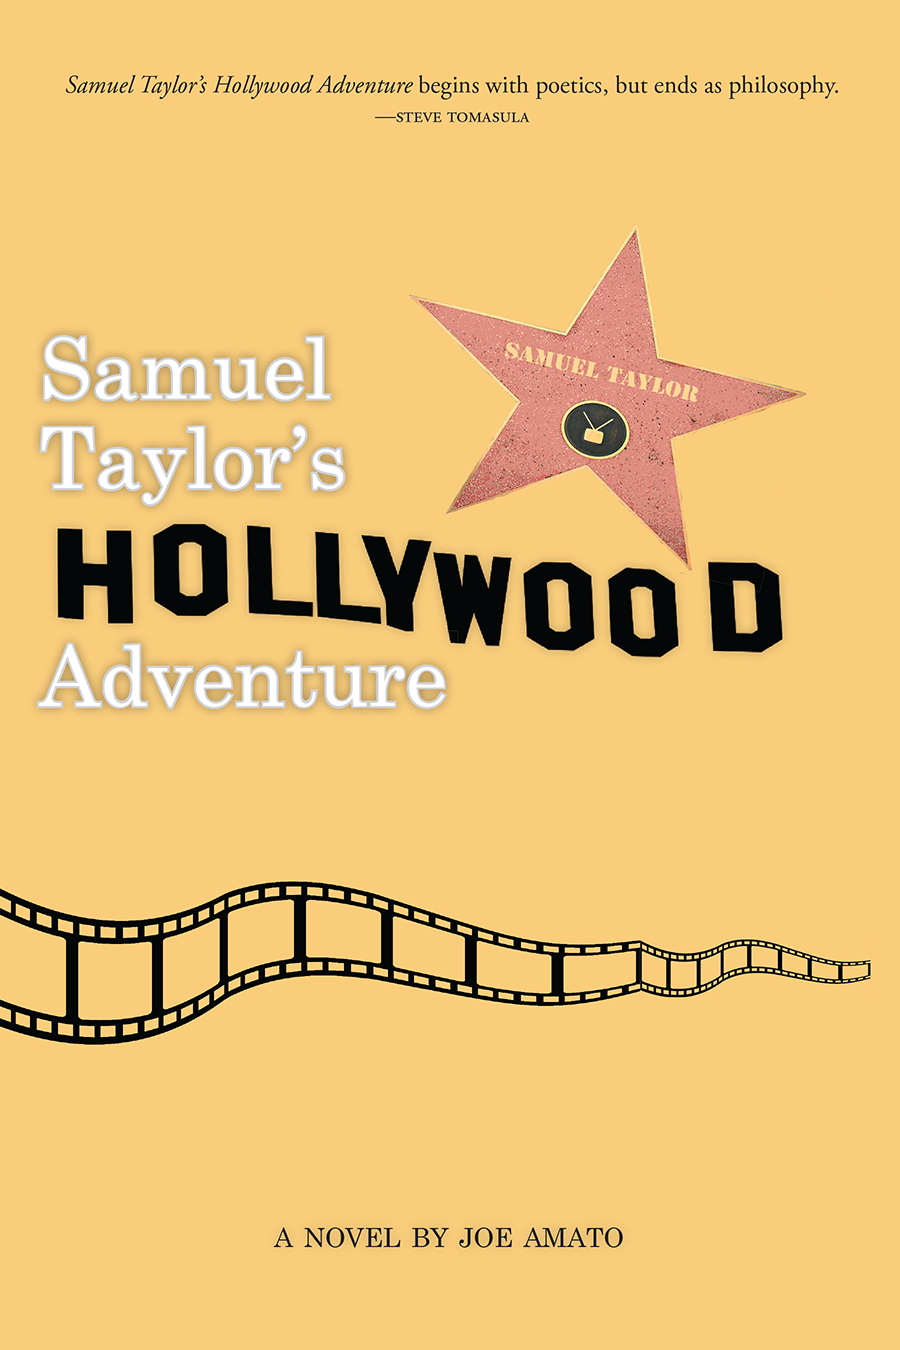 Samuel Taylor's Hollywood Adventure